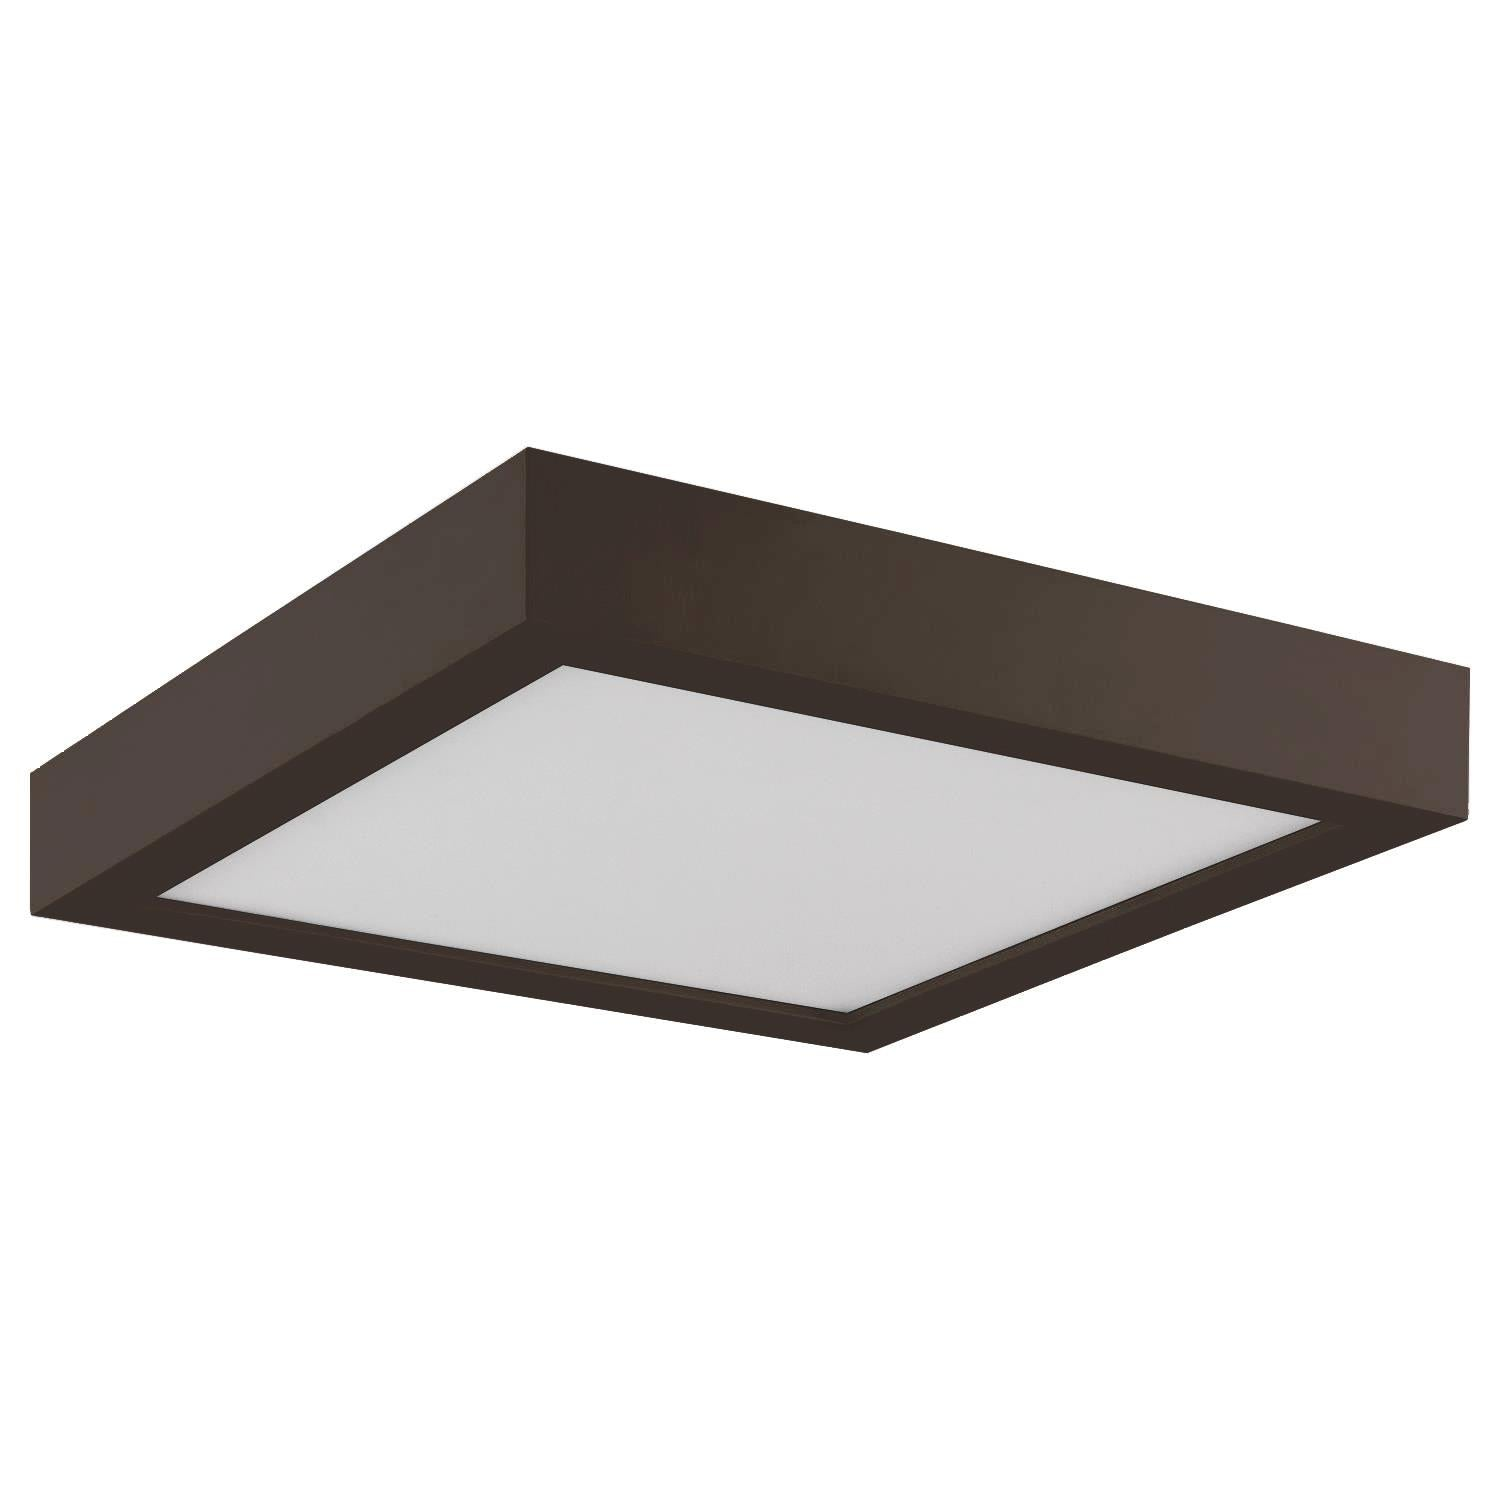 Sunlite 9in. Square LED Mini Flat Panel Fixture, 3000K - Warm White, Bronze Finish